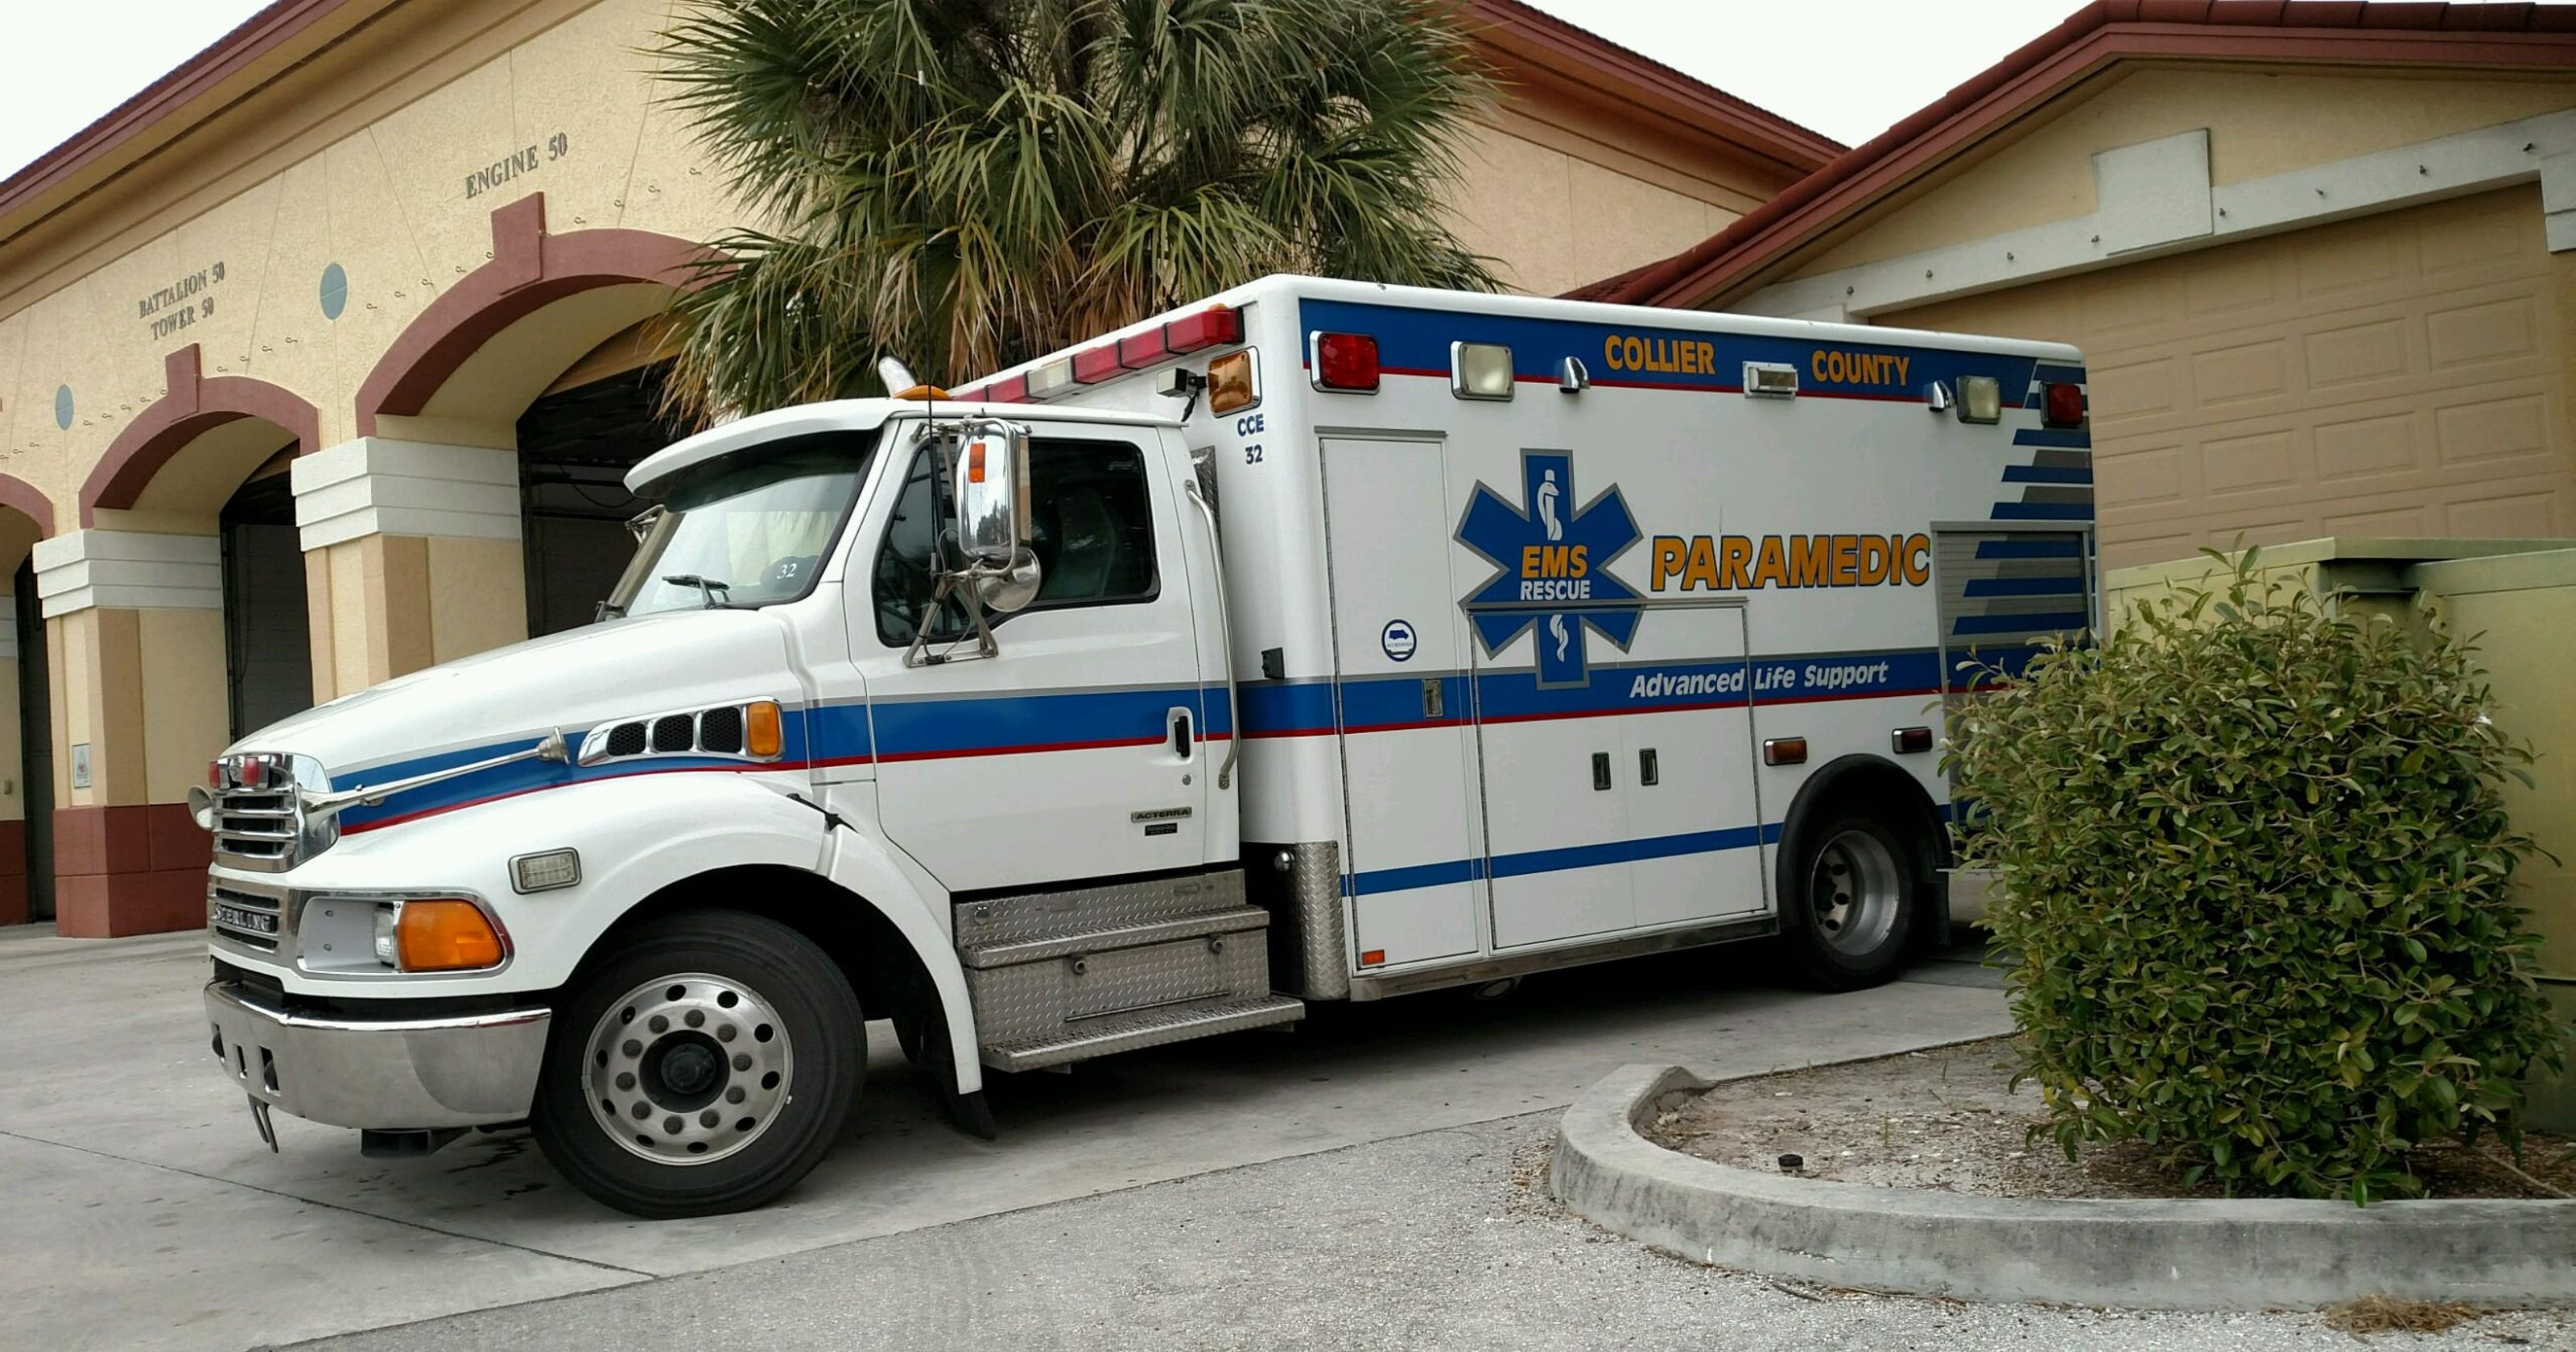 Collier Ems Reviewing Case After Employee S Arrest On